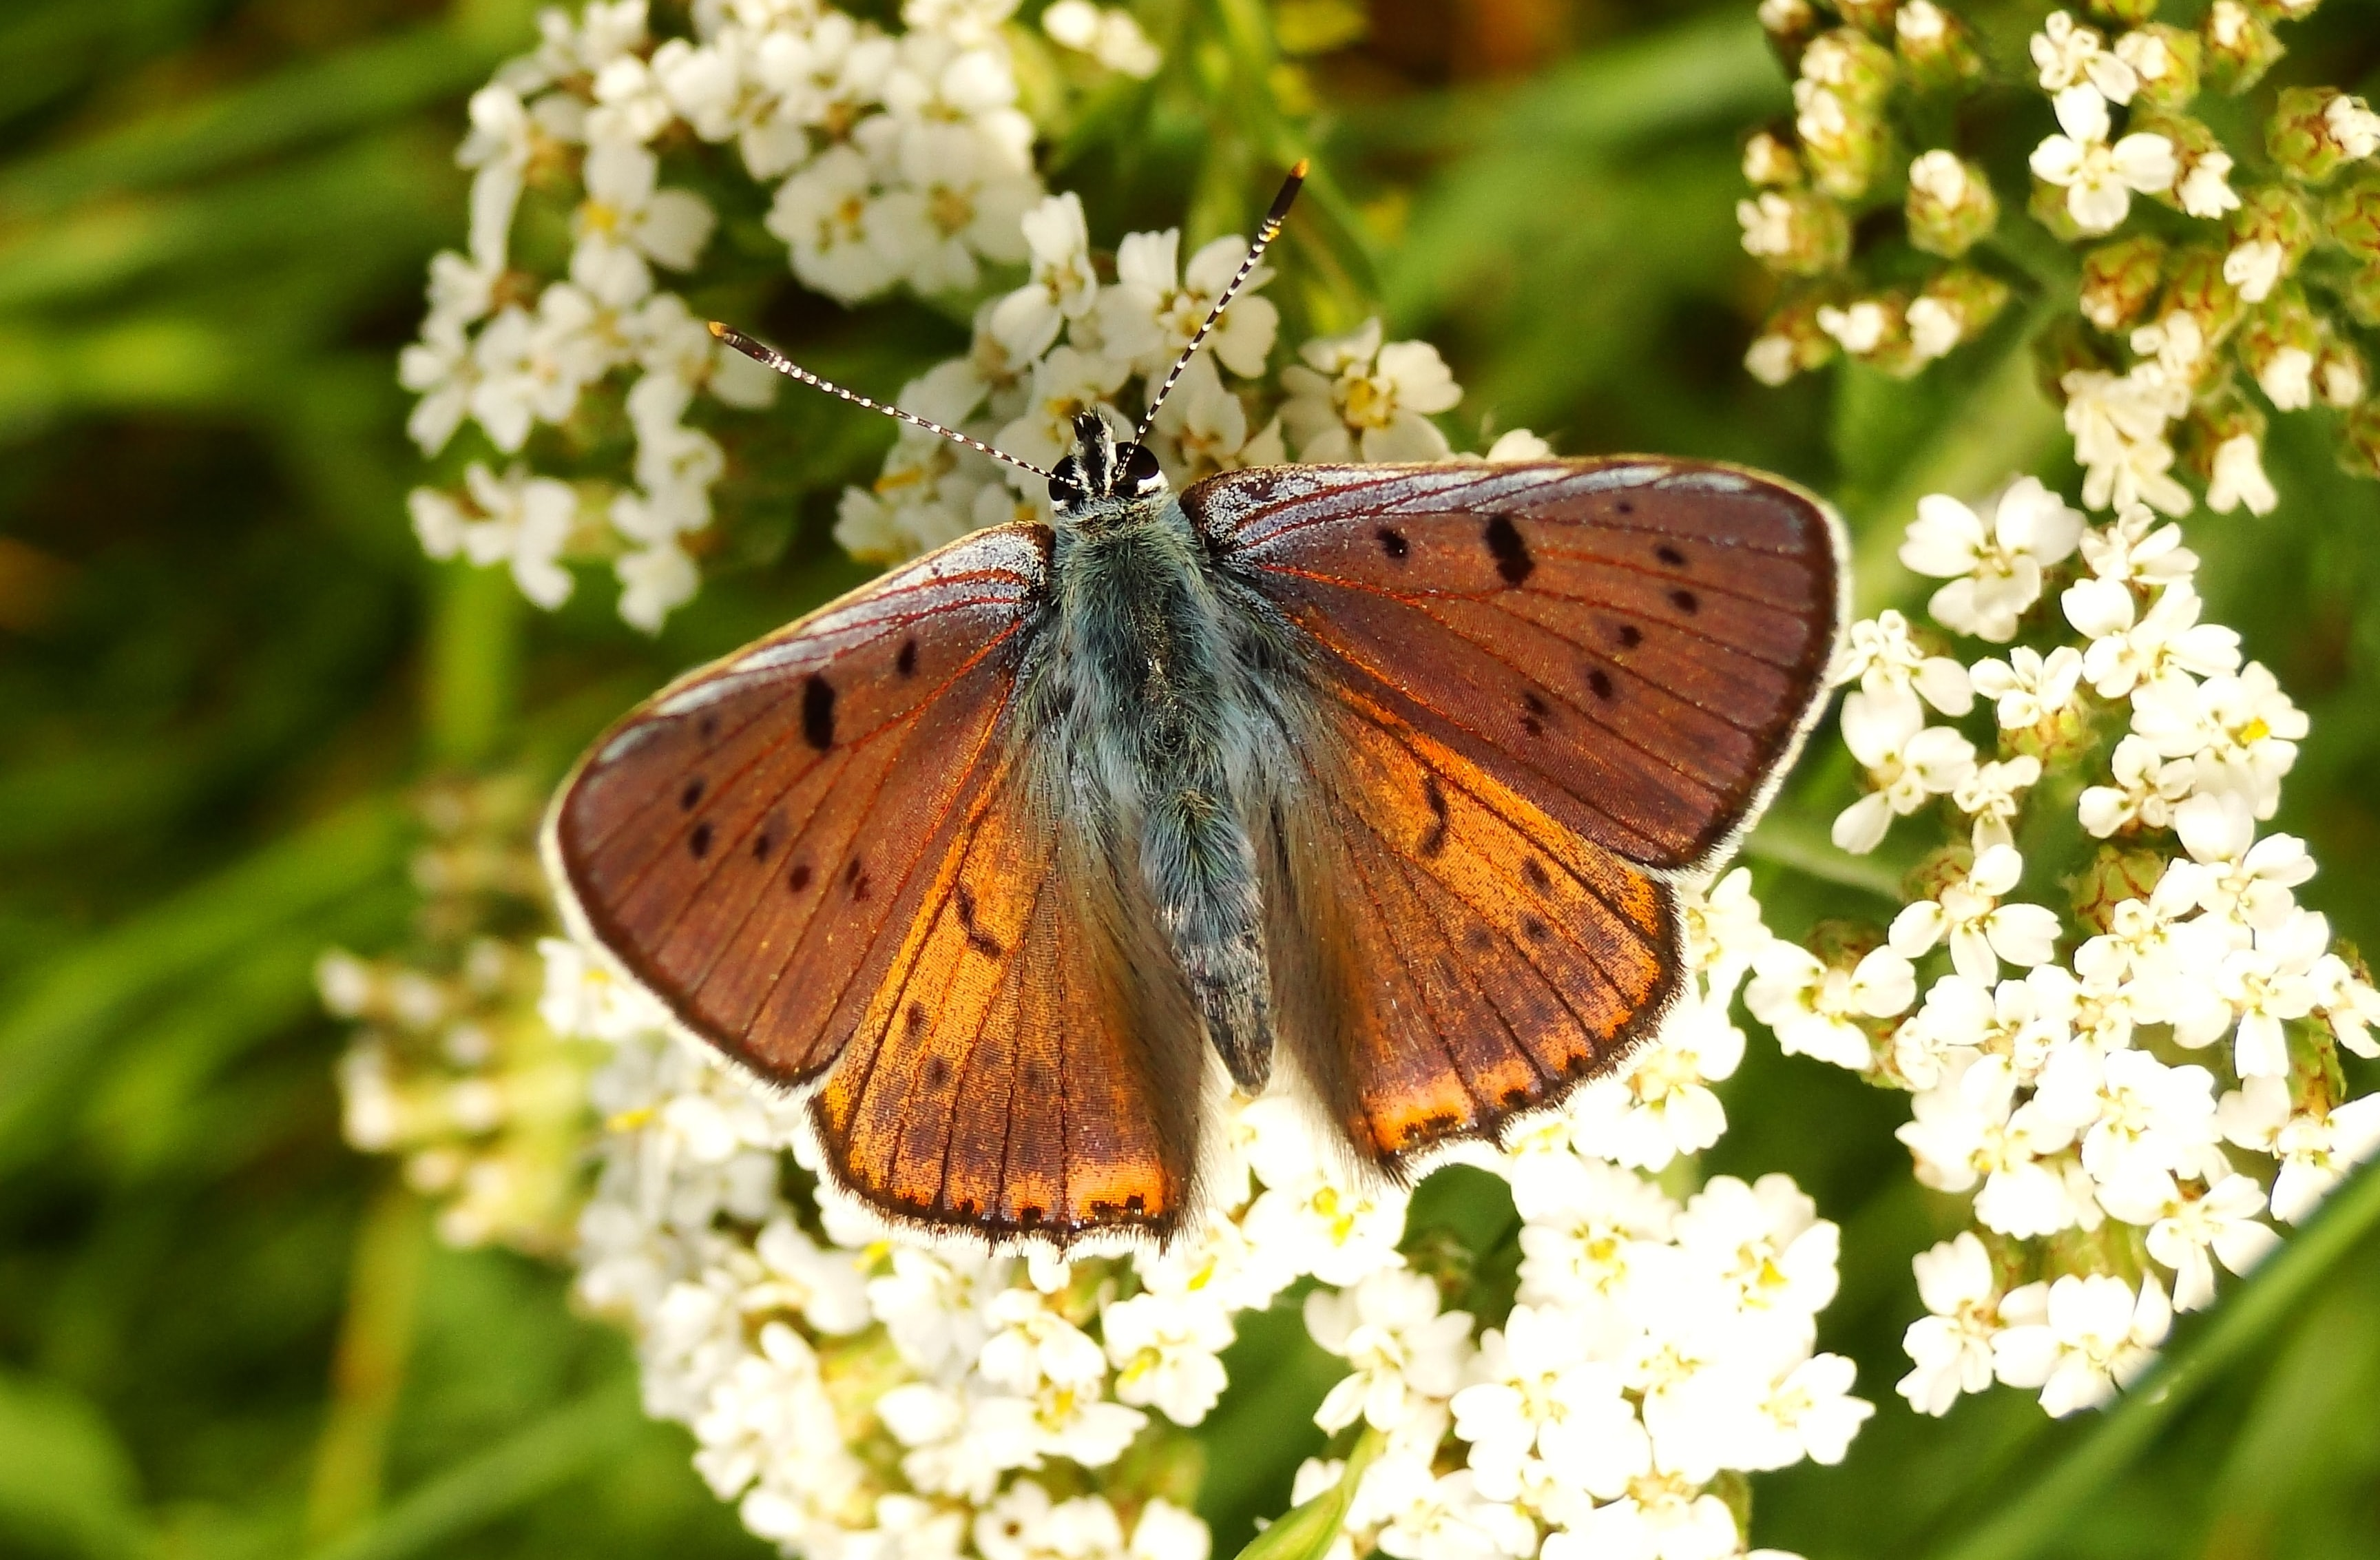 brown butterfly perched on flowers